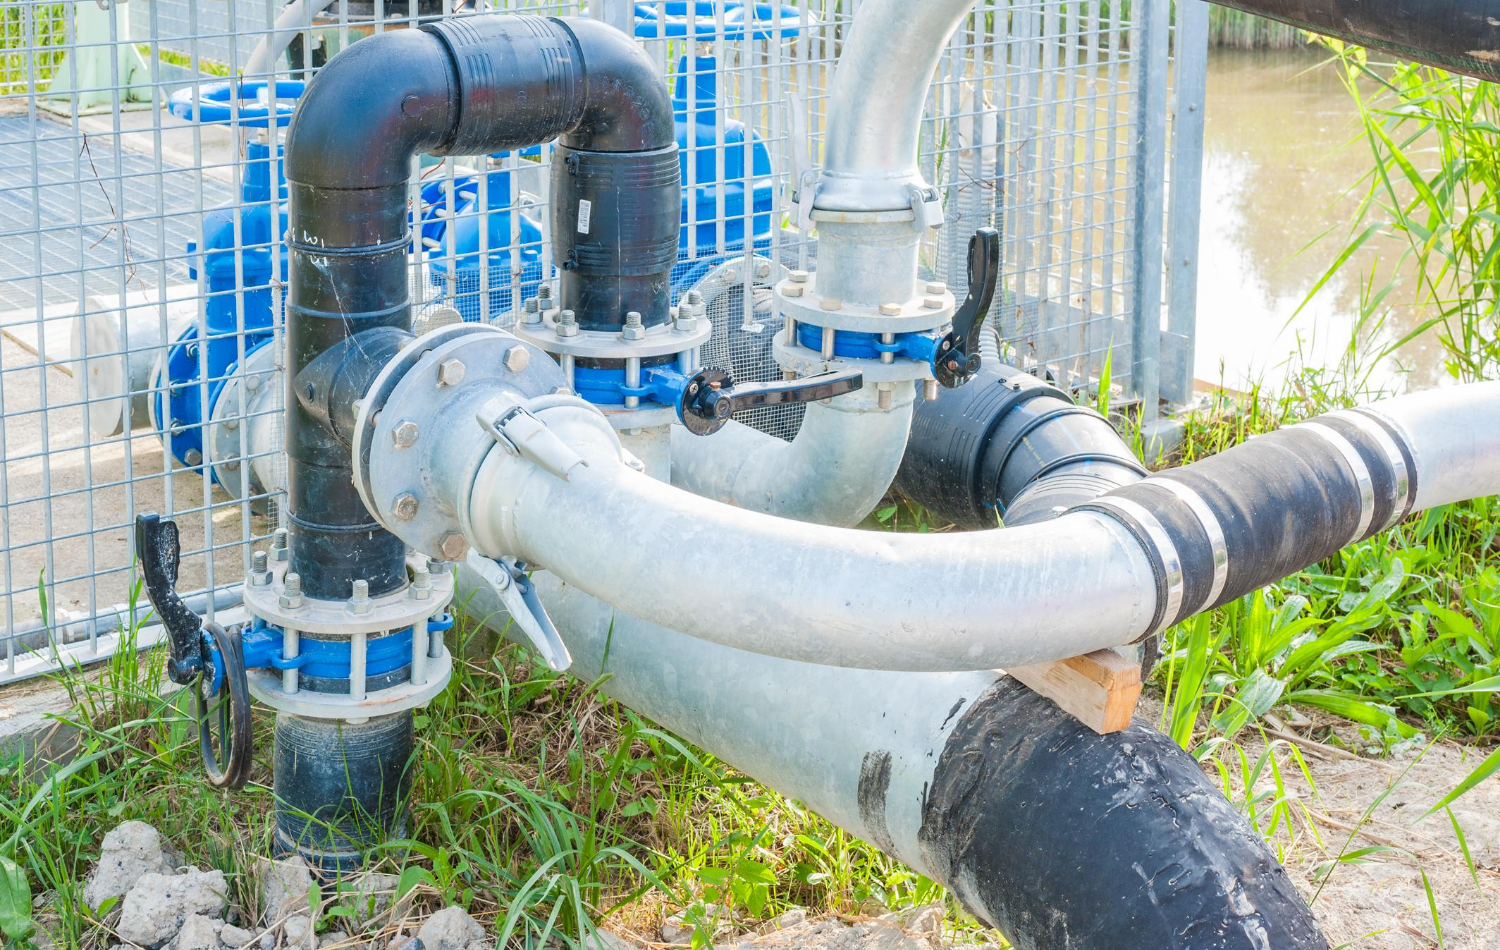 6 Dangers of an Improperly Maintained Industrial Irrigation System